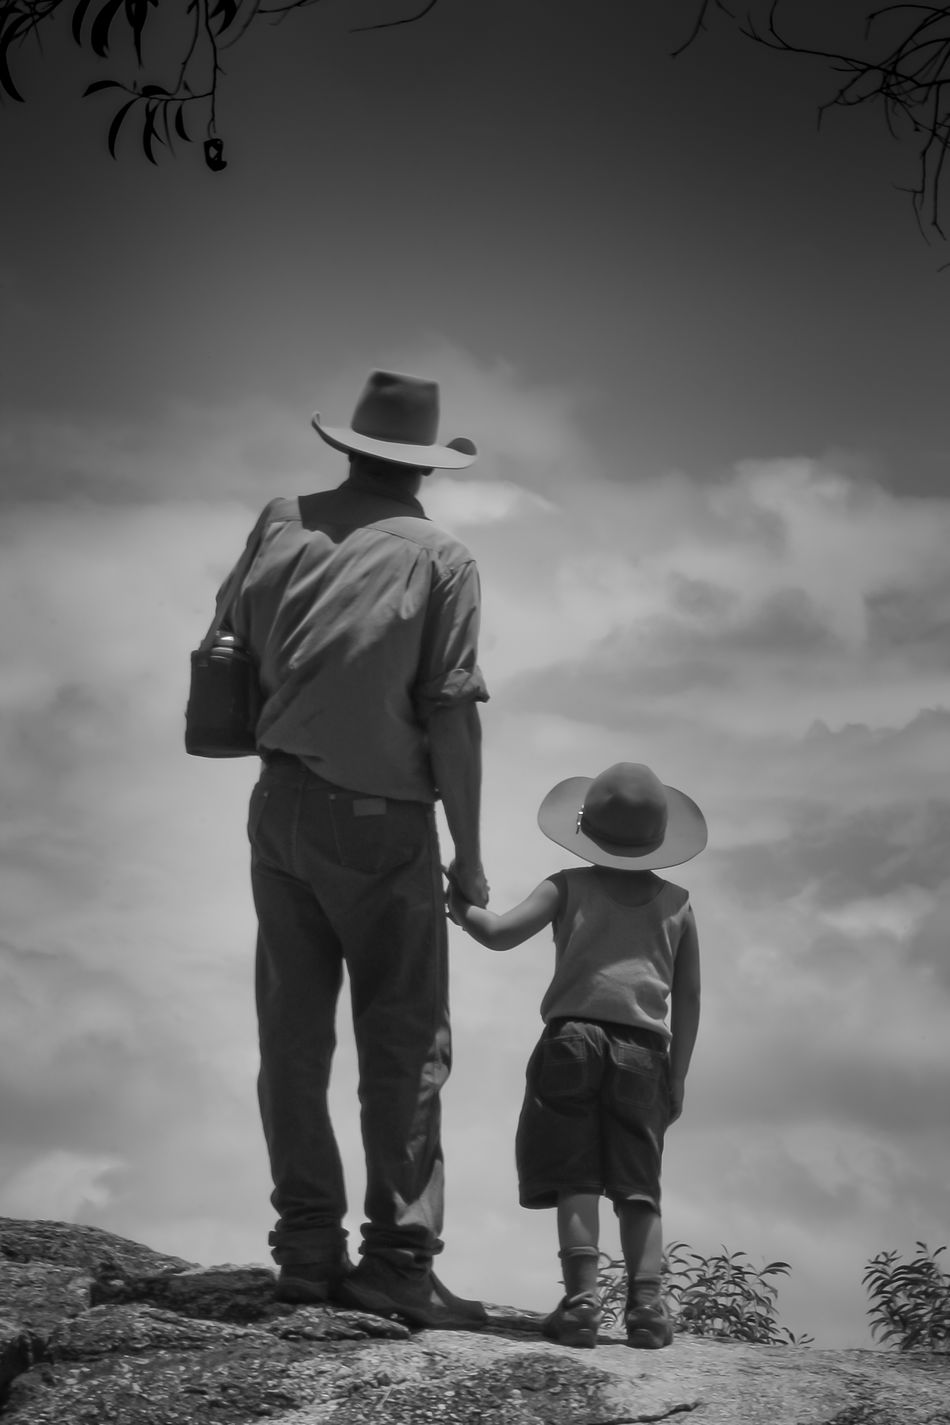 Some wisdom is best handed down personally. Father and son look out into the cloudscape after hiking to a remote ridge top in Far North Queensland. Australia Love Life, Love Photography Blackandwhite Photography Father Father & Son Fatherhood  Photography EyeEmNewHere Man Son Hat Cowboy Hiking Family Queensland Australia Fnq Far North Qld Clouds And Sky Two People Alone In Nature Simple Holding Hands Love Family Time Walking Around Walkabout Hikingadventures Bushwalking